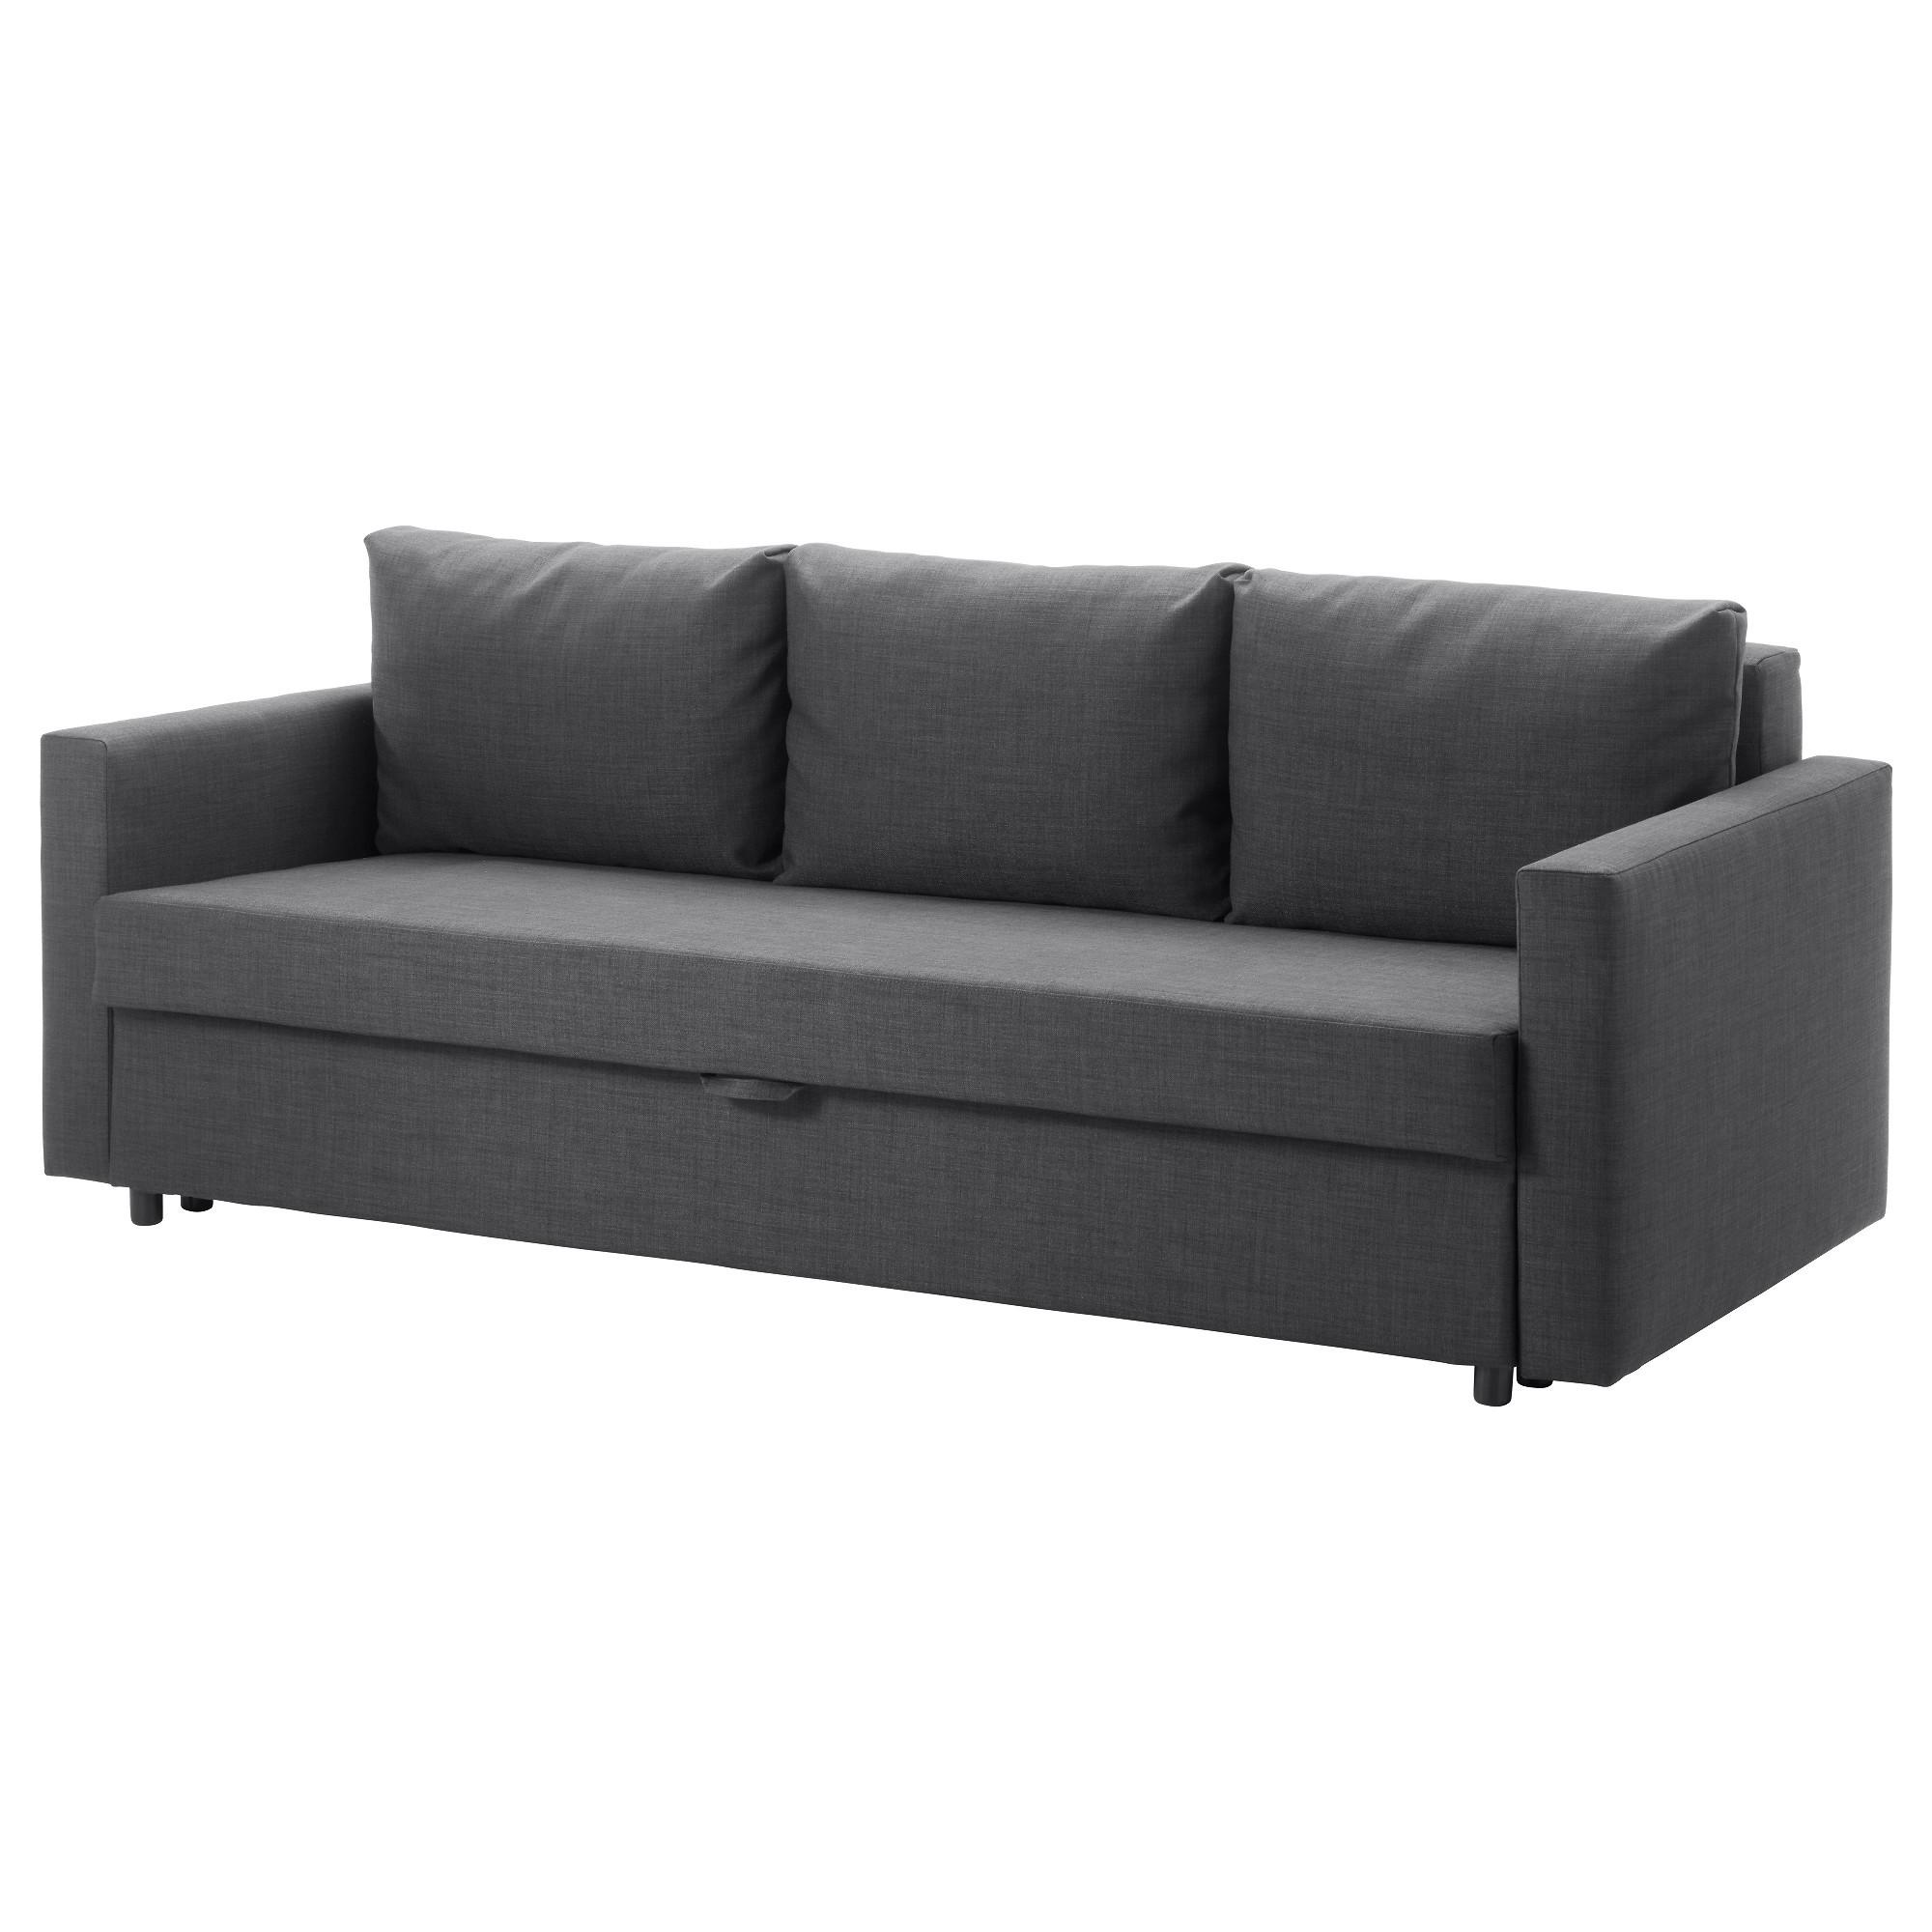 Choosing Comfortable Sofa Furniture Living Room Most